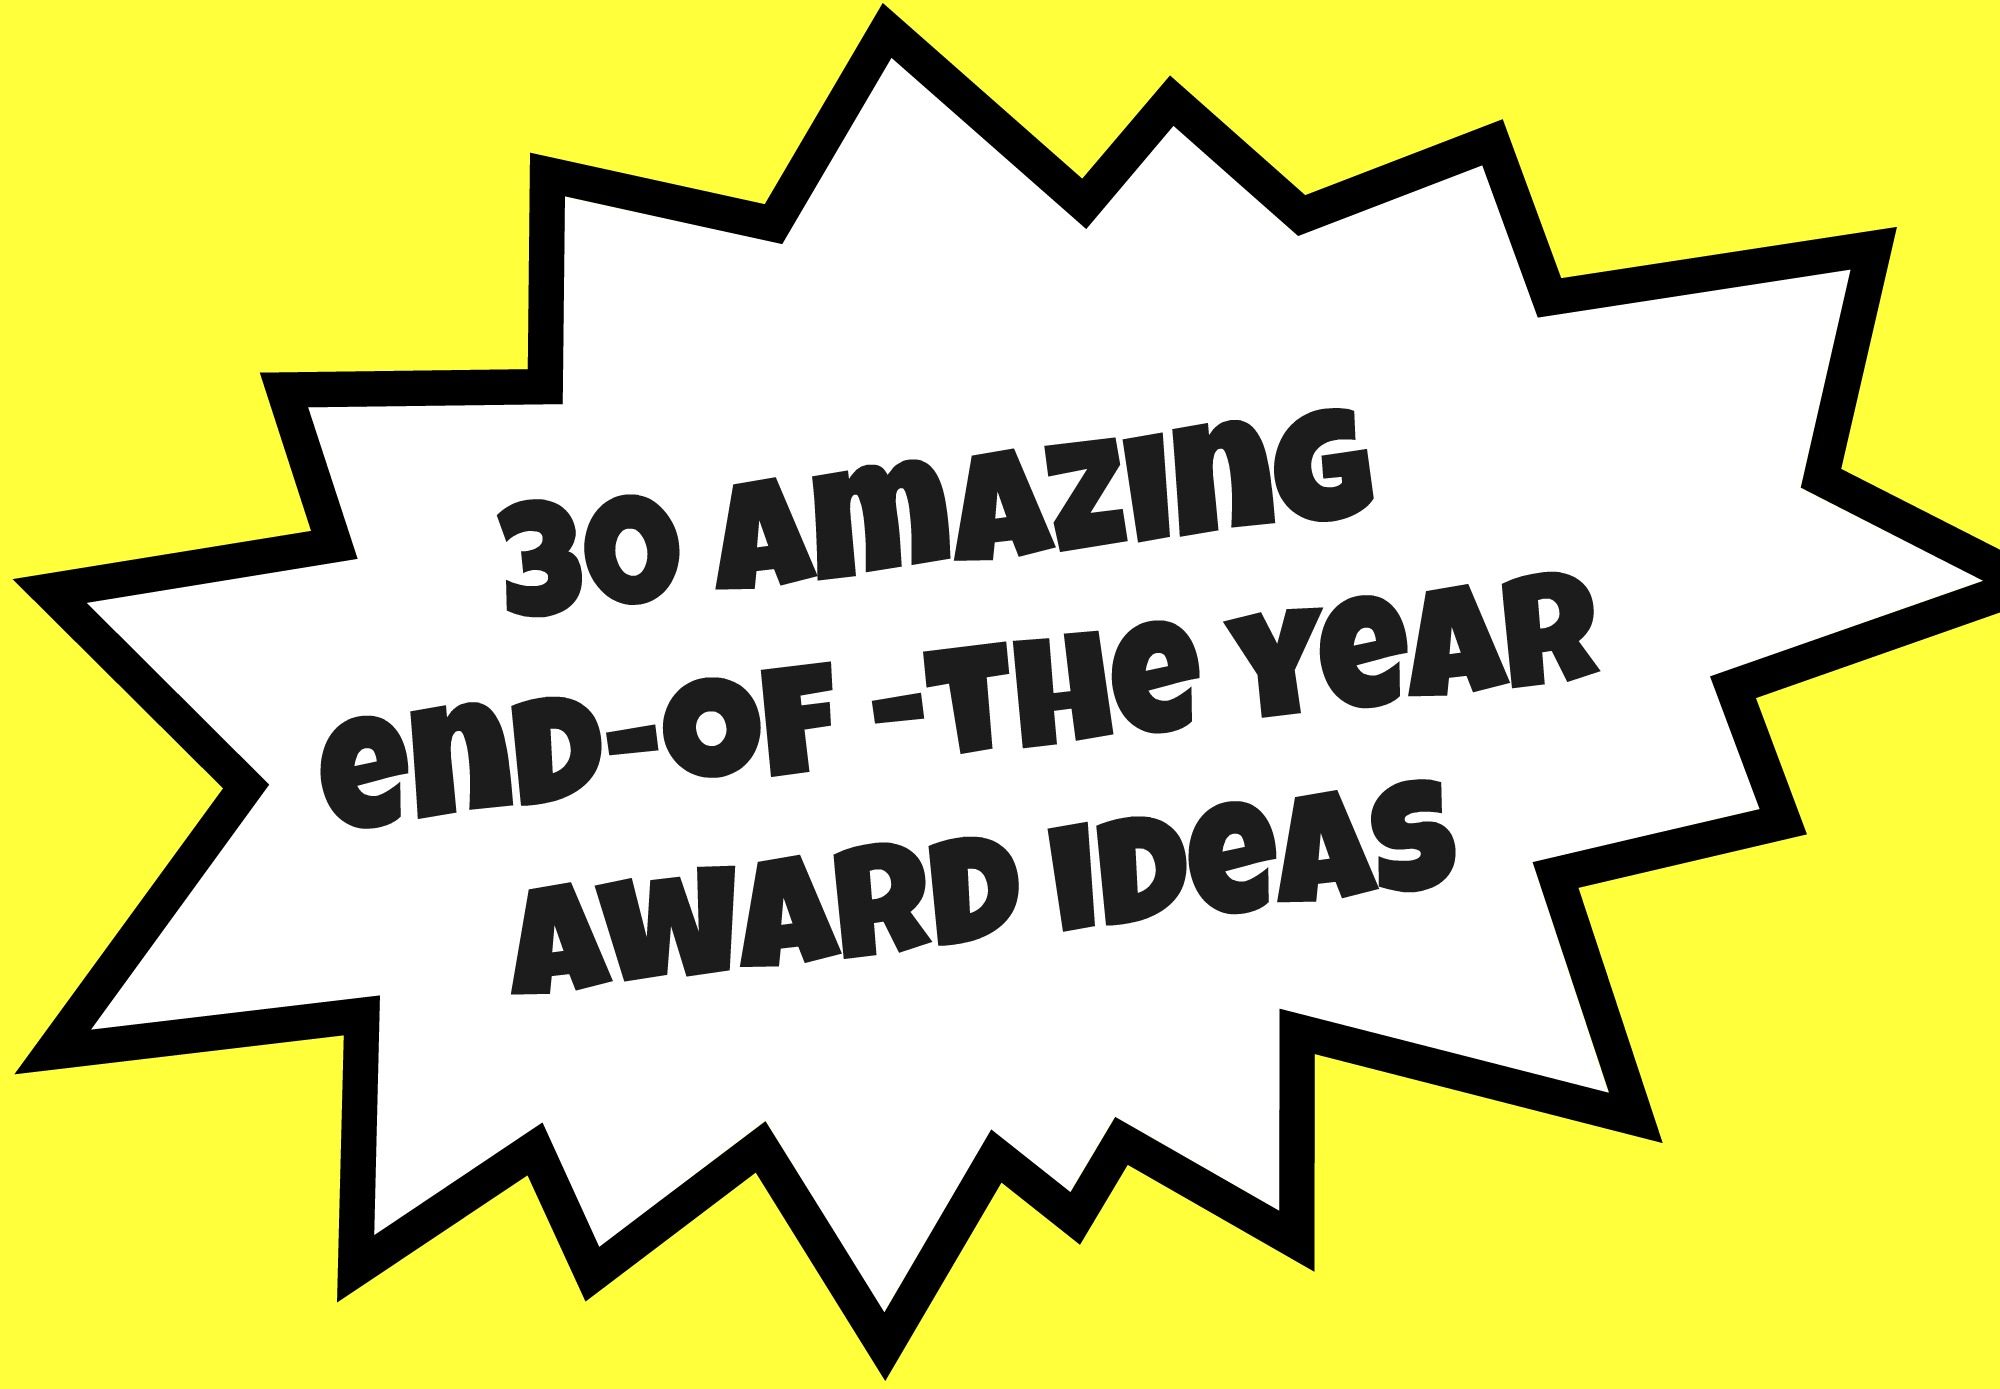 30 Amazing End of the Year Award Ideas.